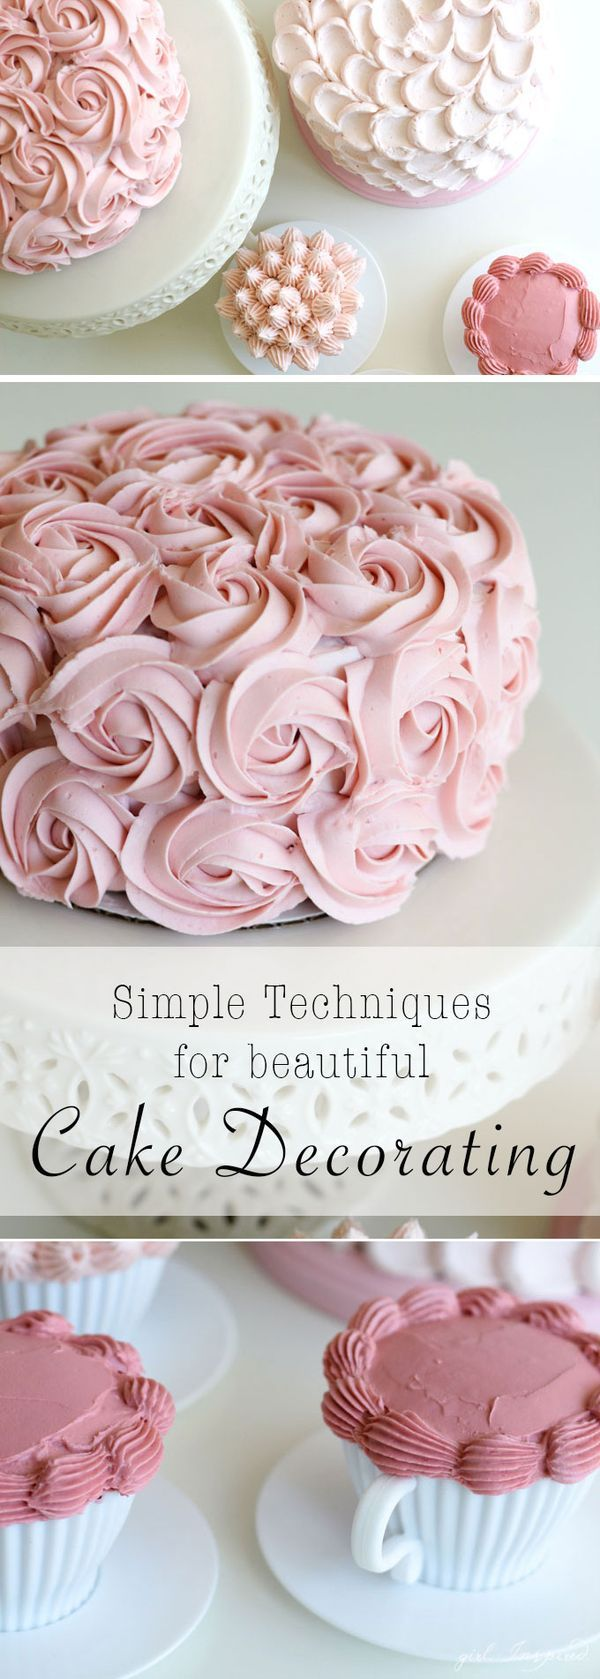 How to's : Learn these simple techniques for cake decorating!